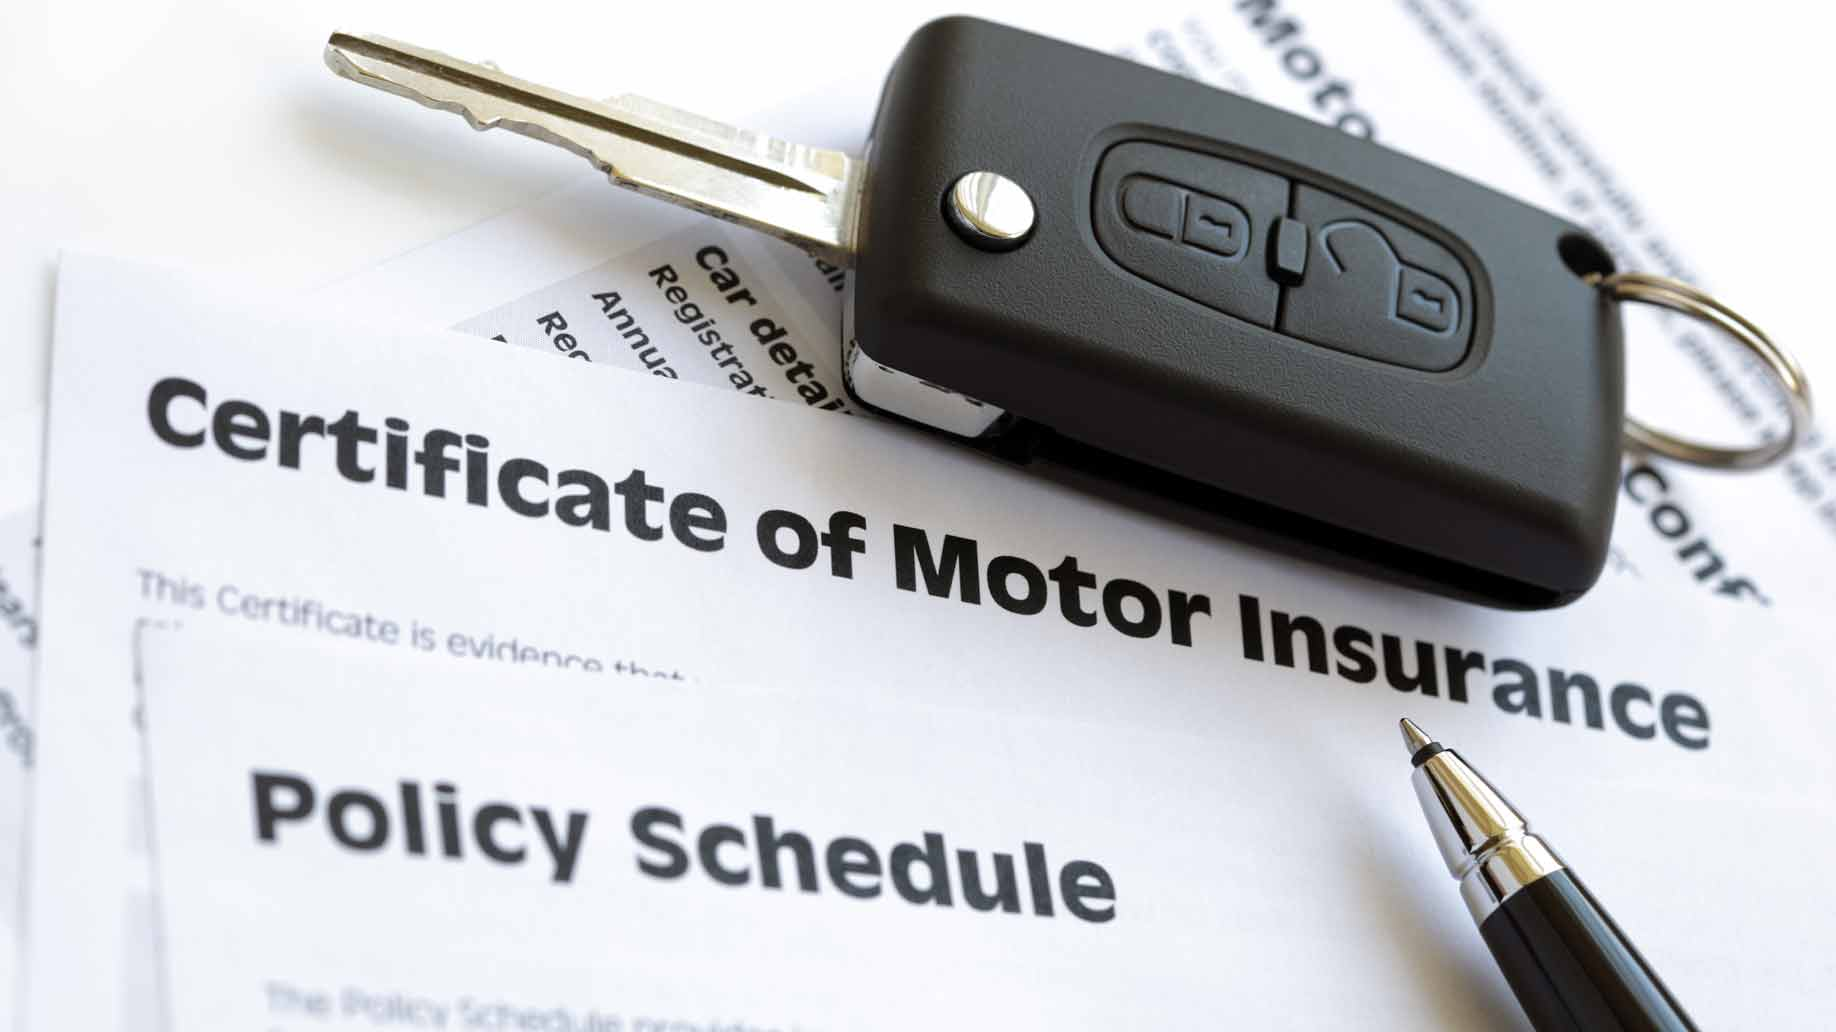 certificate of motor insurance policy